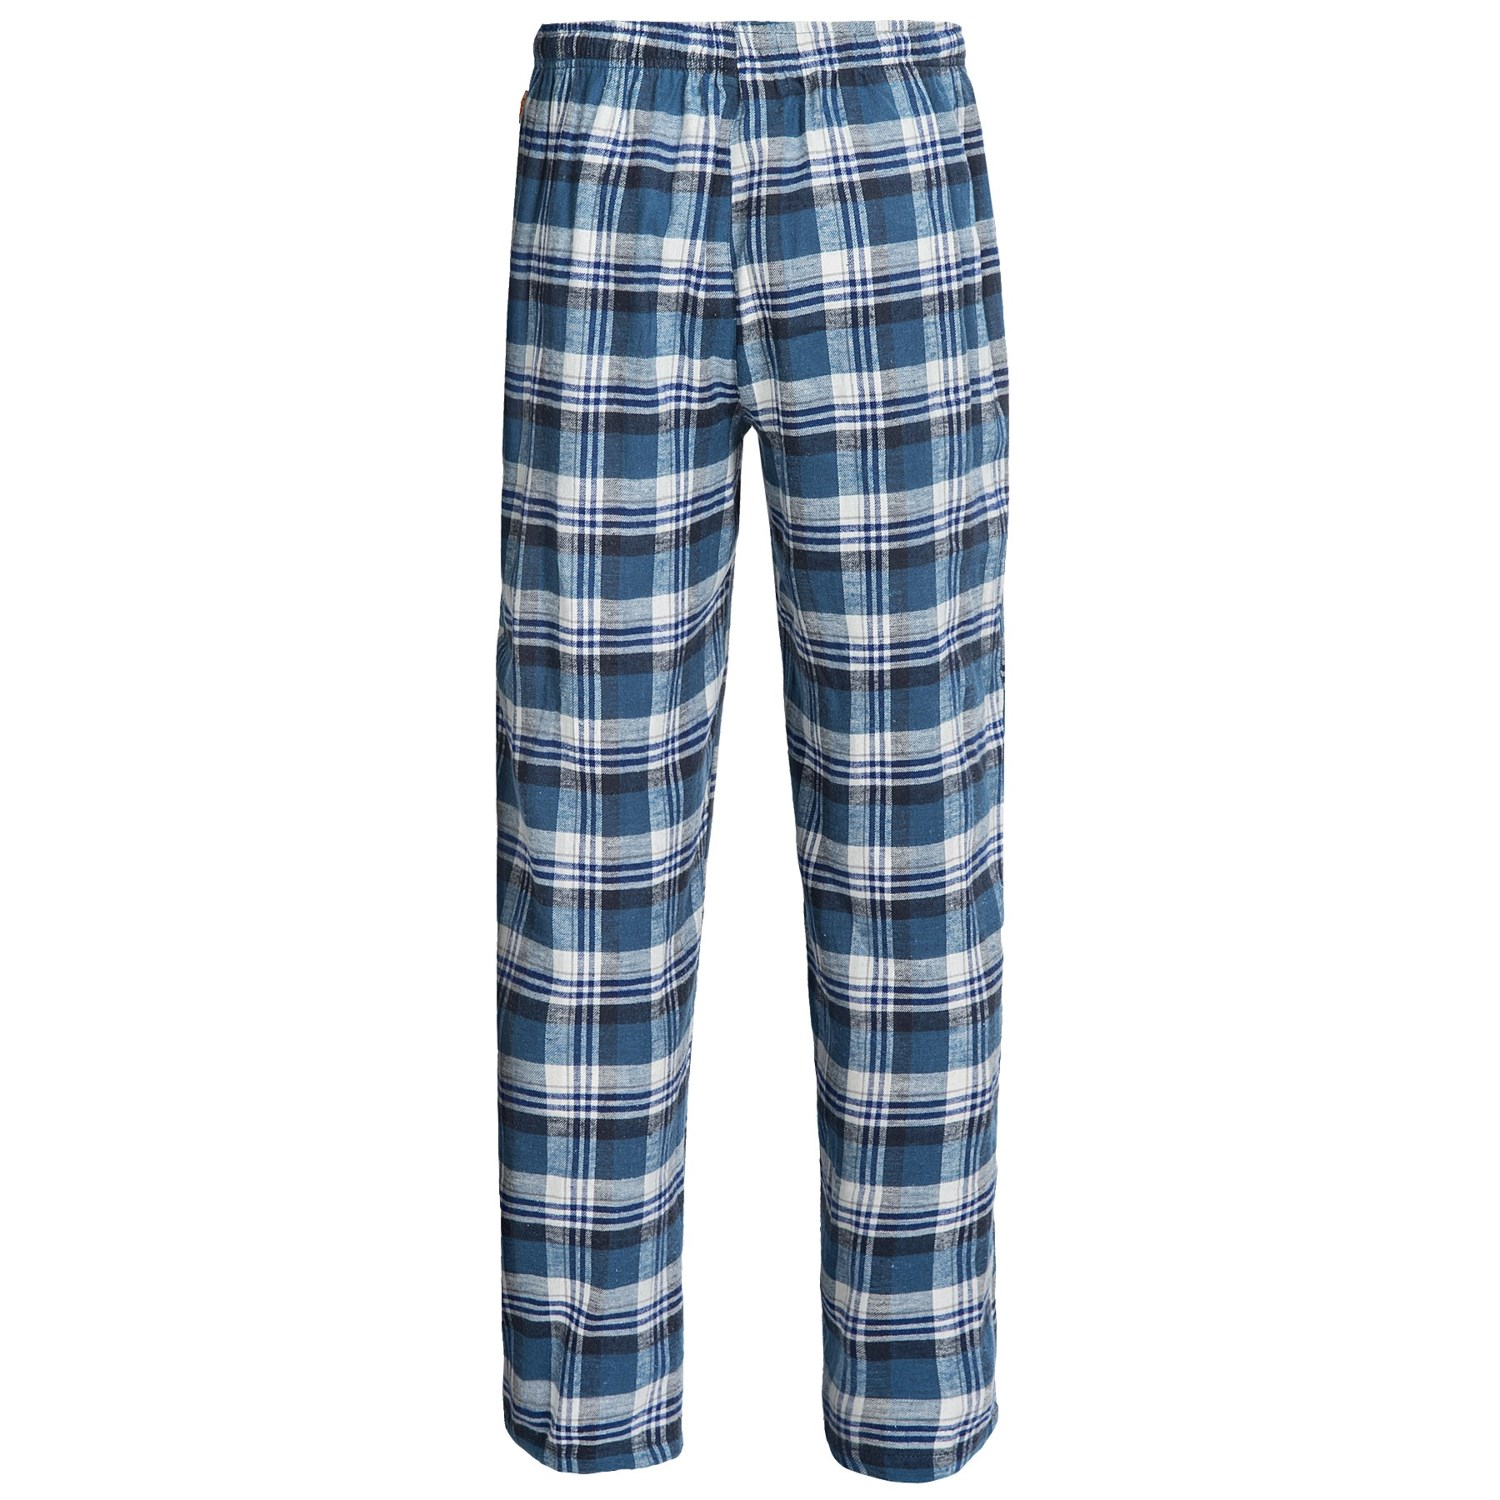 Mens Flannel Pajama Pants - Comfortable Cotton Bottoms Sleep Loungewear. from $ 8 90 Prime. out of 5 stars LAPASA. Men's % Cotton Knit Flannel Pajama Lounge Sleep Pants Plaid PJ Bottoms w Pockets and Drawstring M39 $ 15 98 Prime. out of 5 stars #followme.